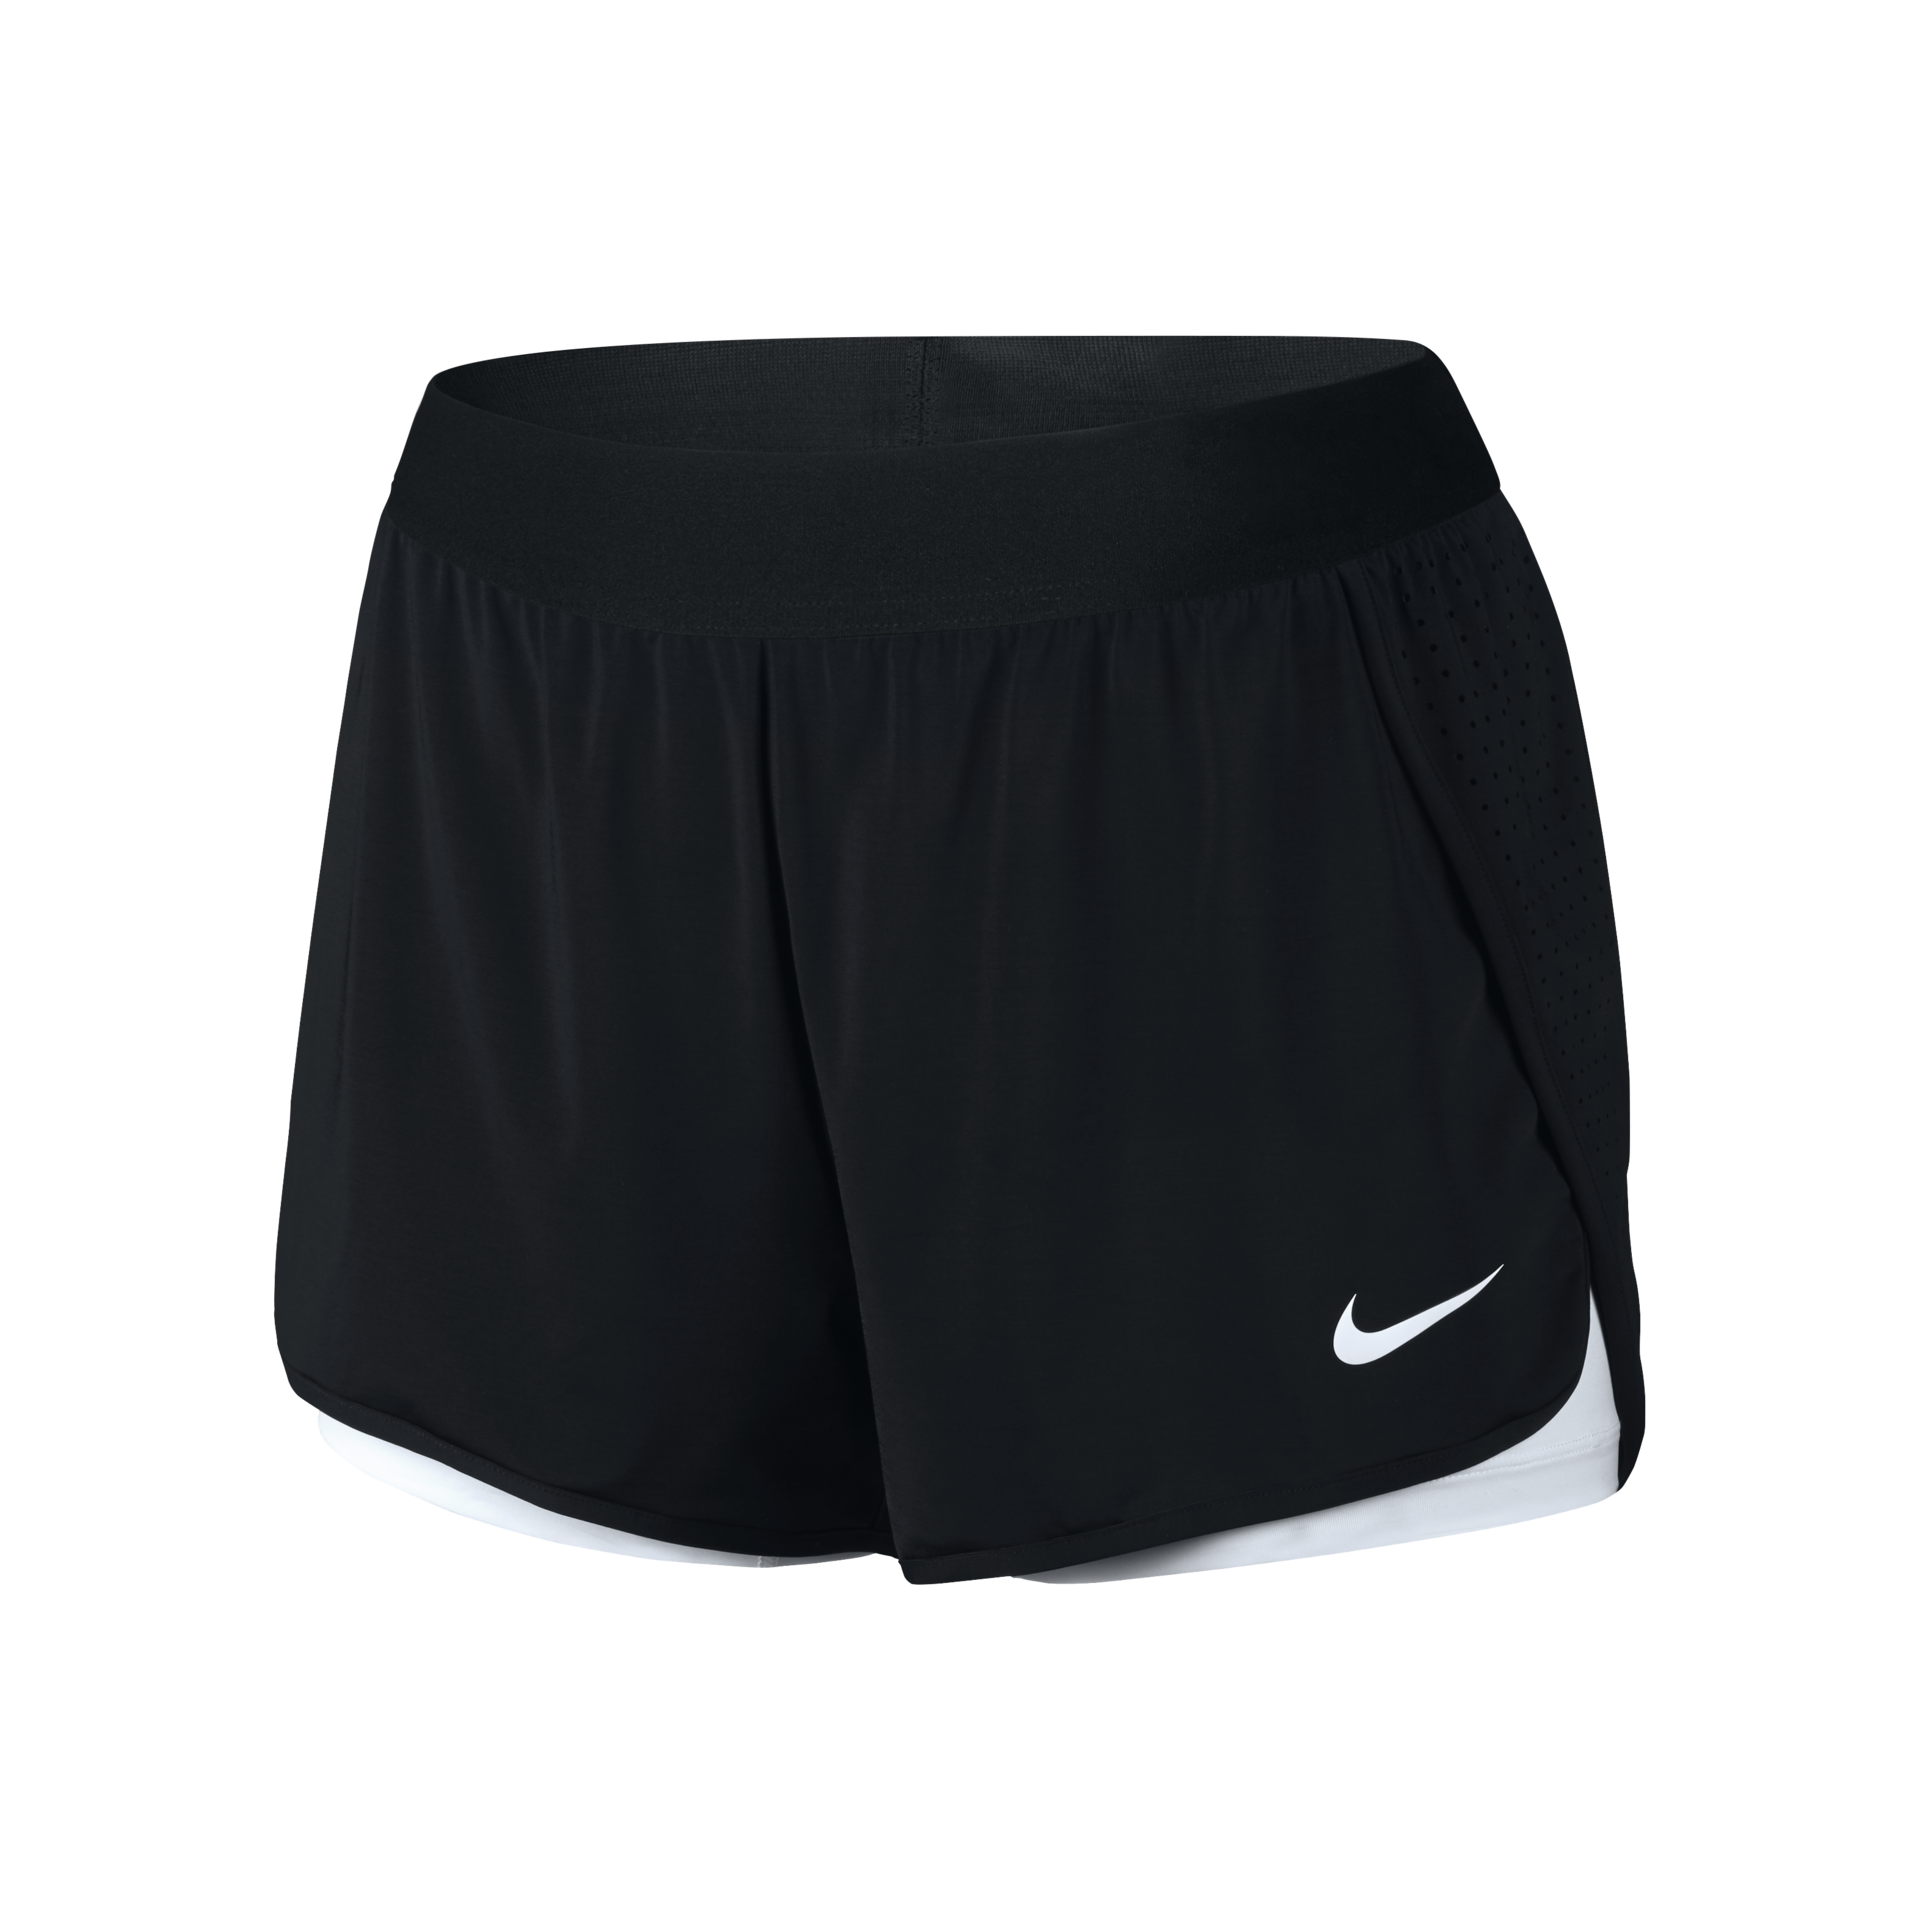 d79eaf30bd222 NIKE DRY TRAINING 2 IN 1 SHORTS LADIES - Poobie Naidoos